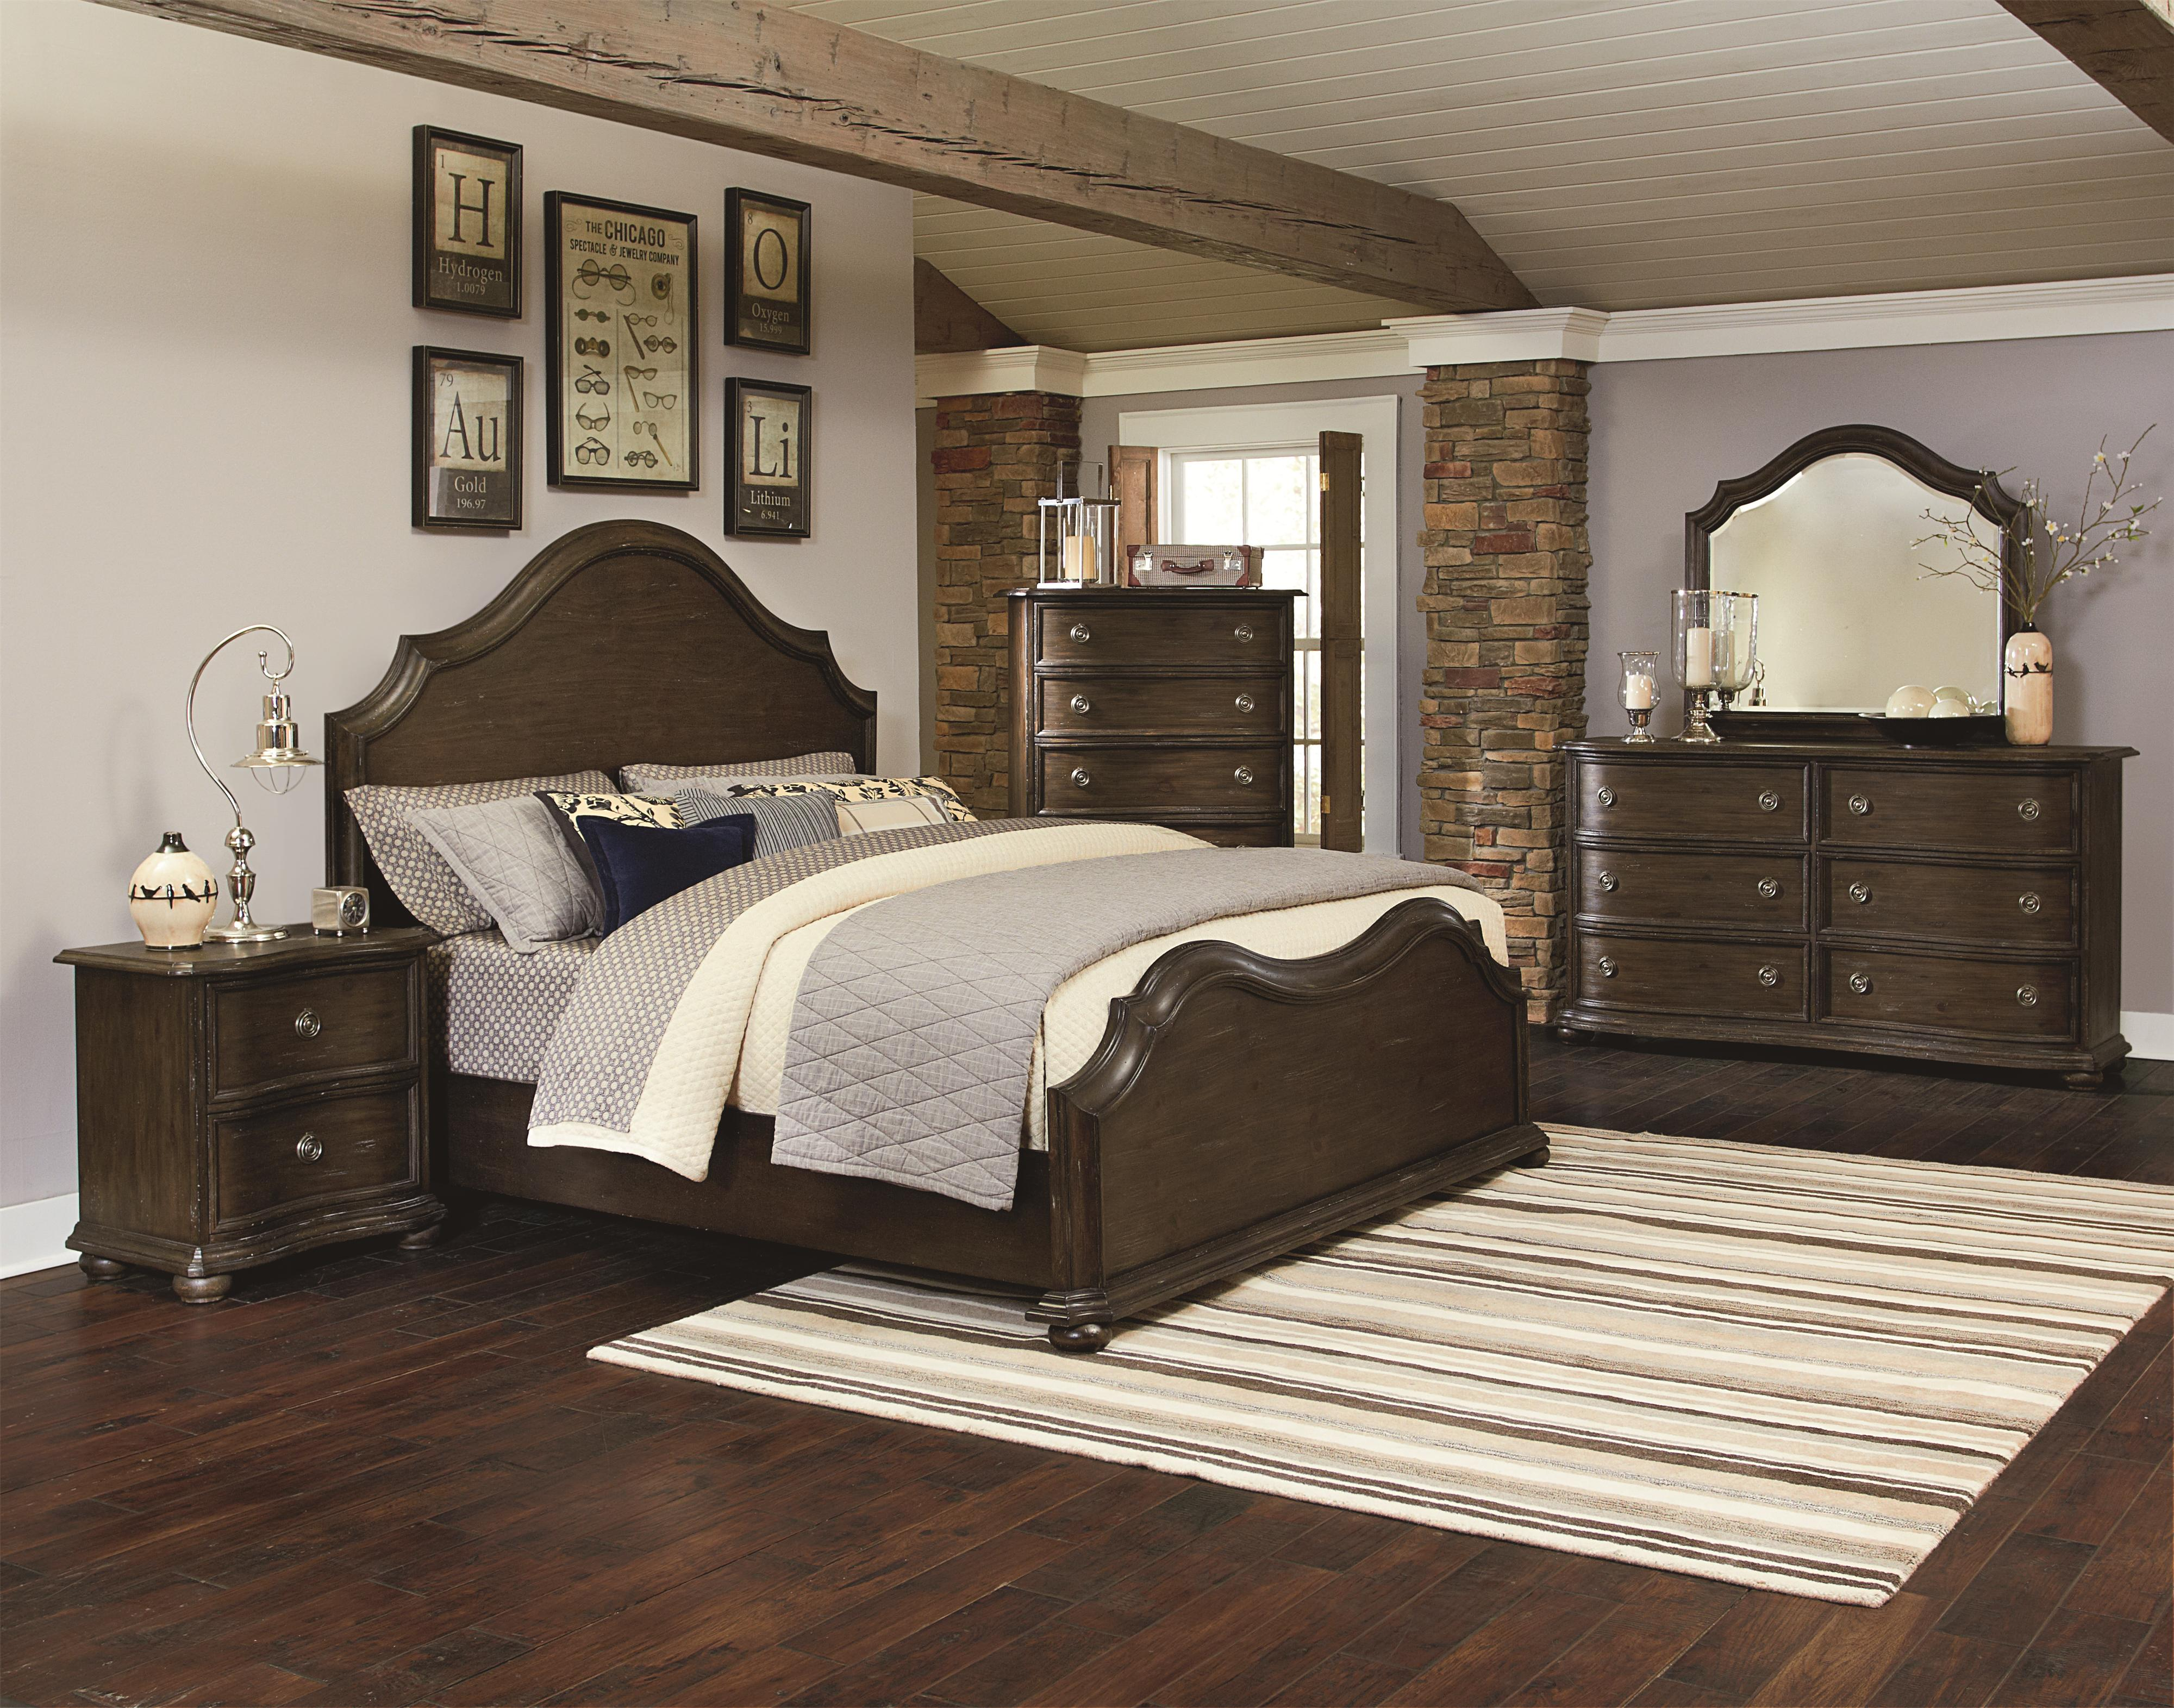 Magnussen Bedroom Furniture Traditional Queen Size Panel Bed With Serpentine Curves By